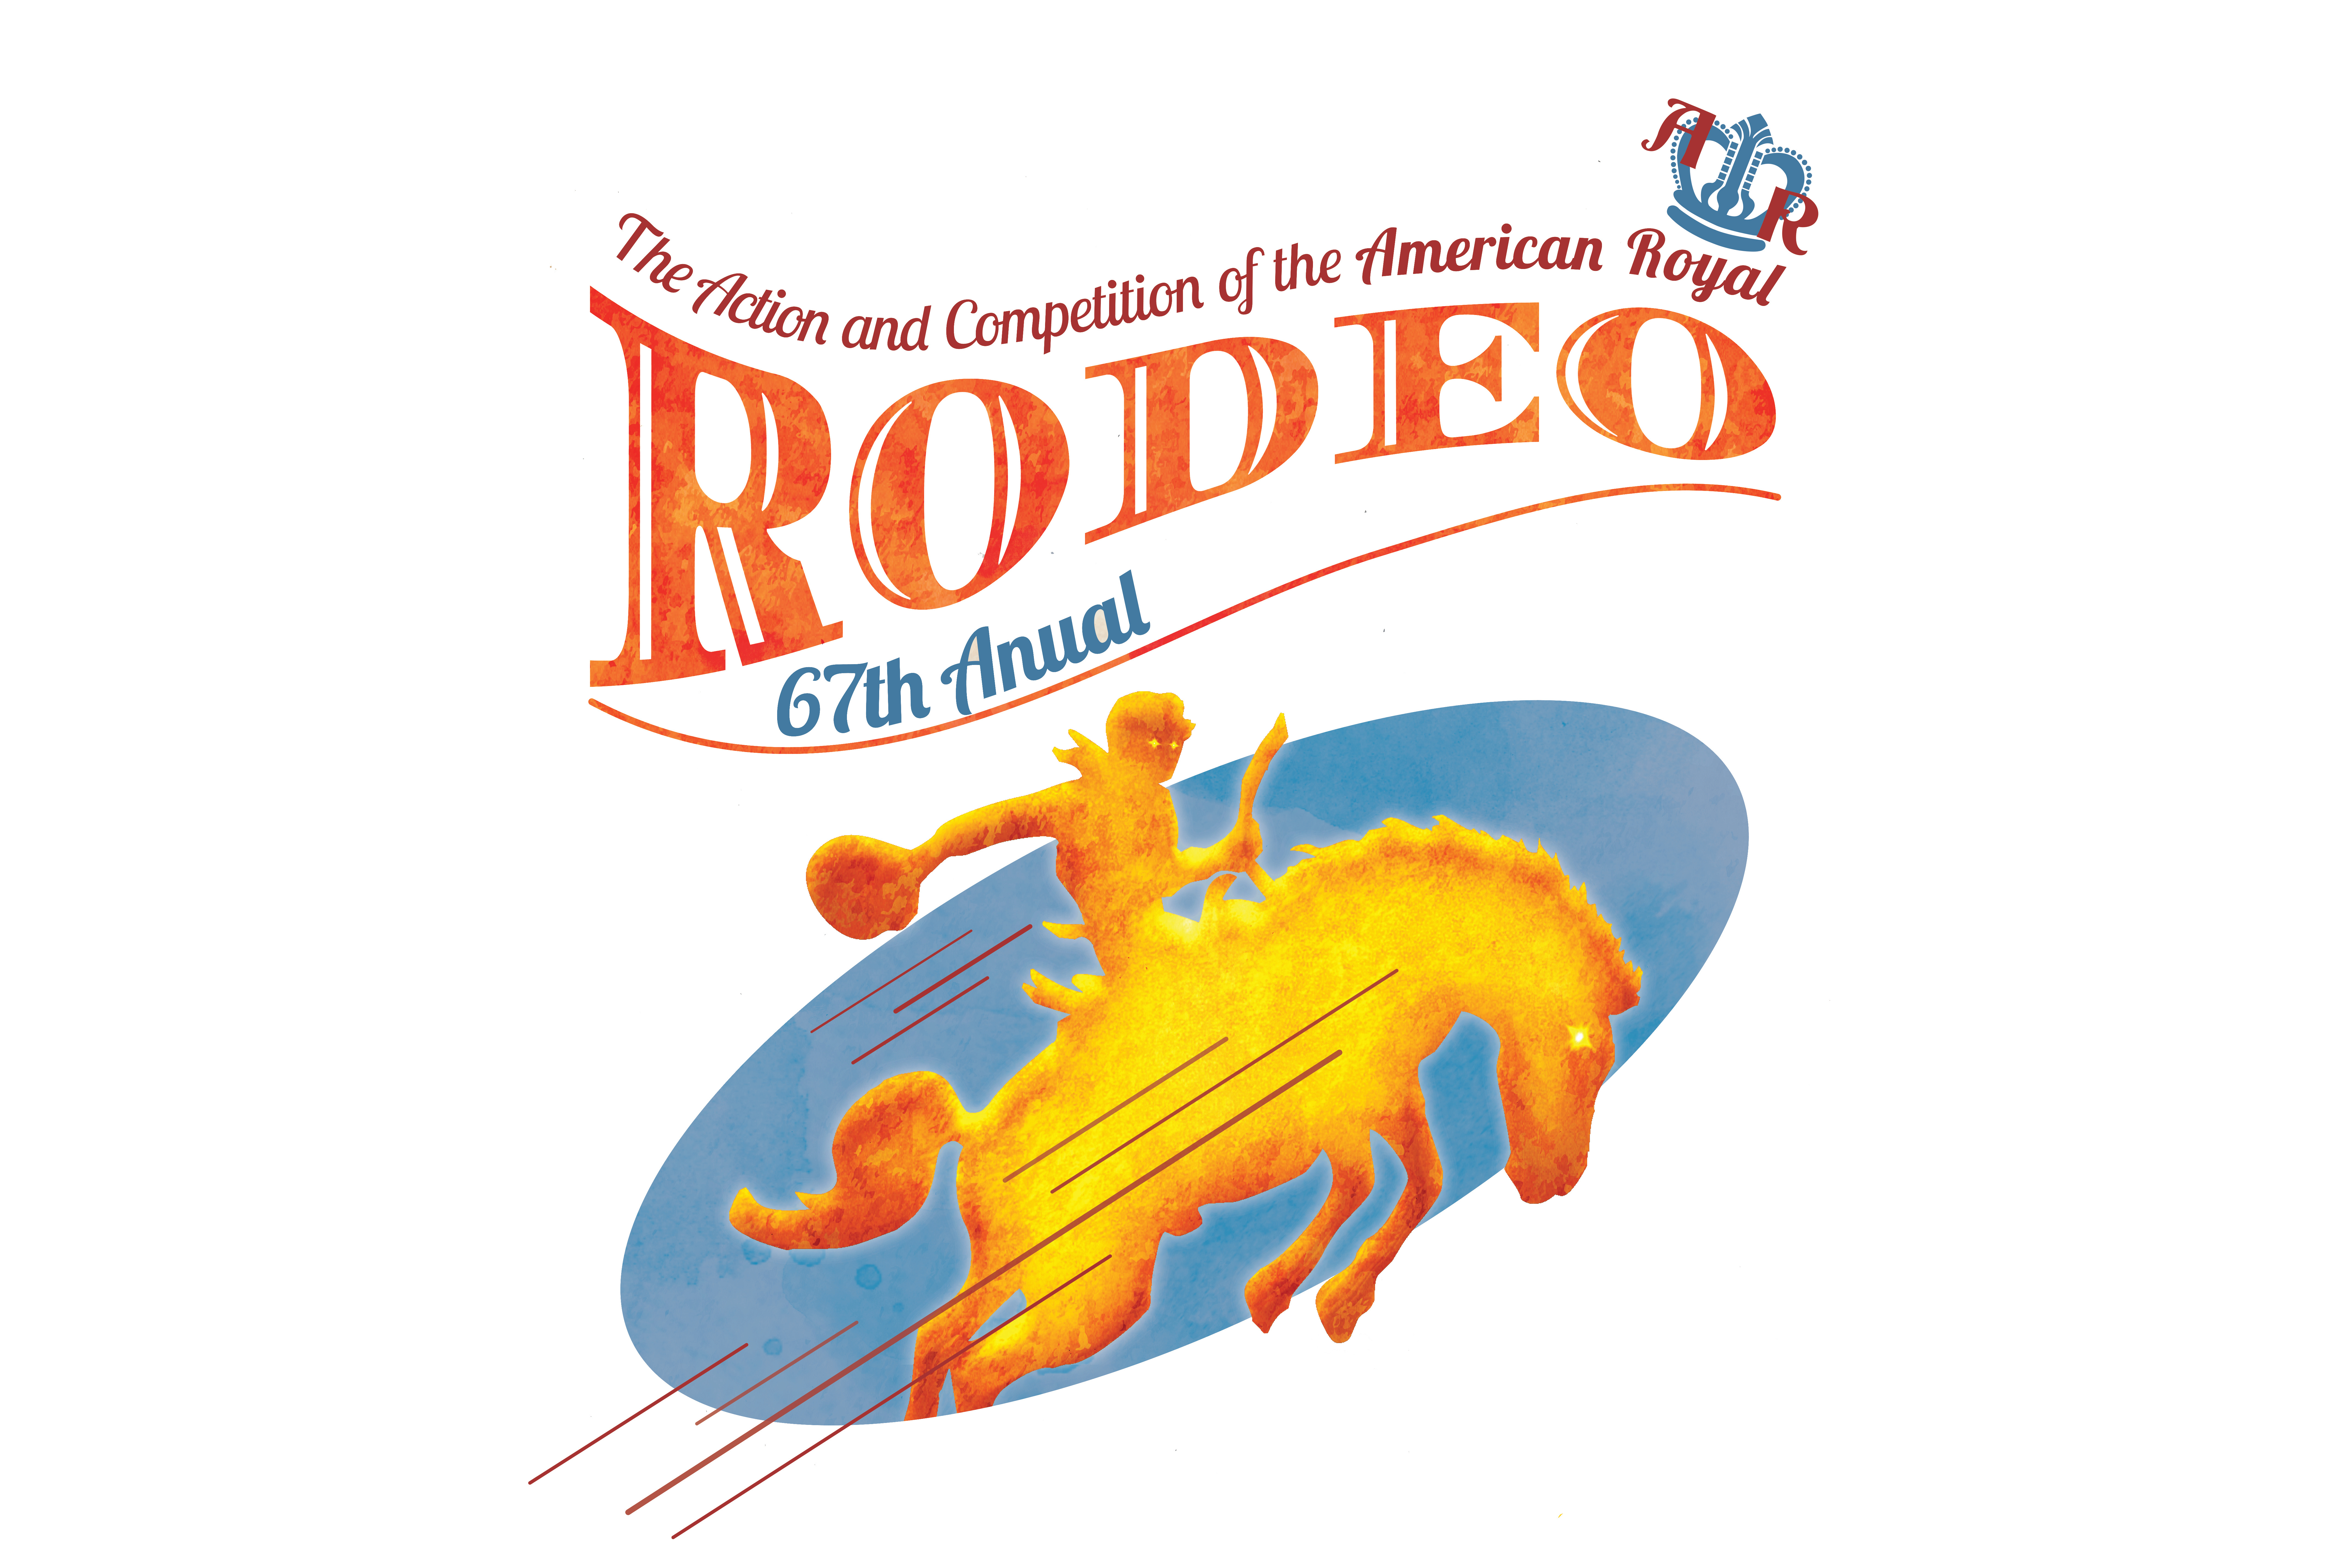 AR Rodeo Poster